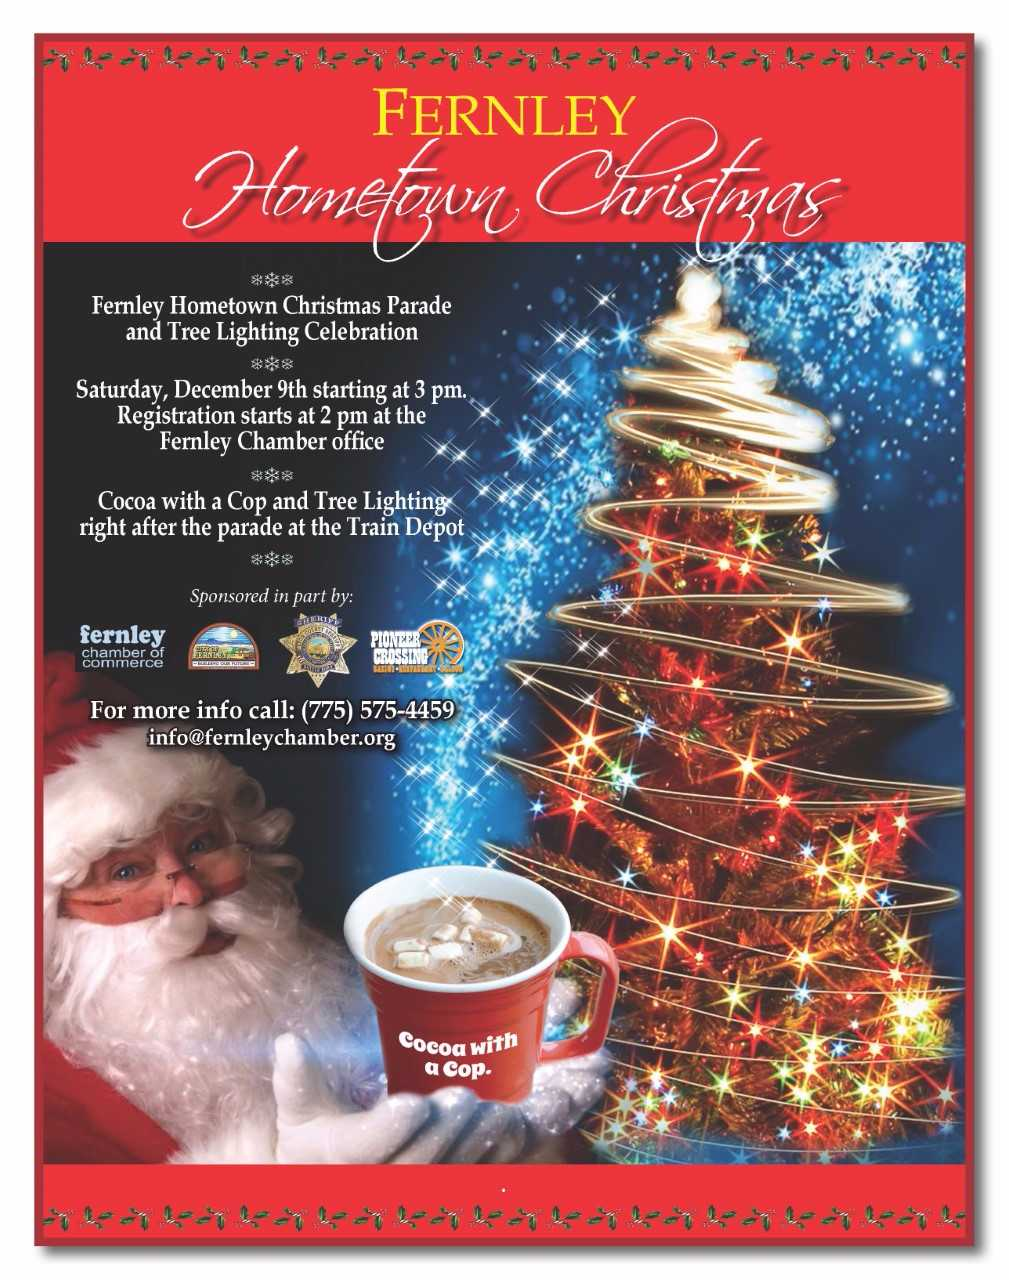 Fernley Hometown Christmas events scheduled for Dec. 9